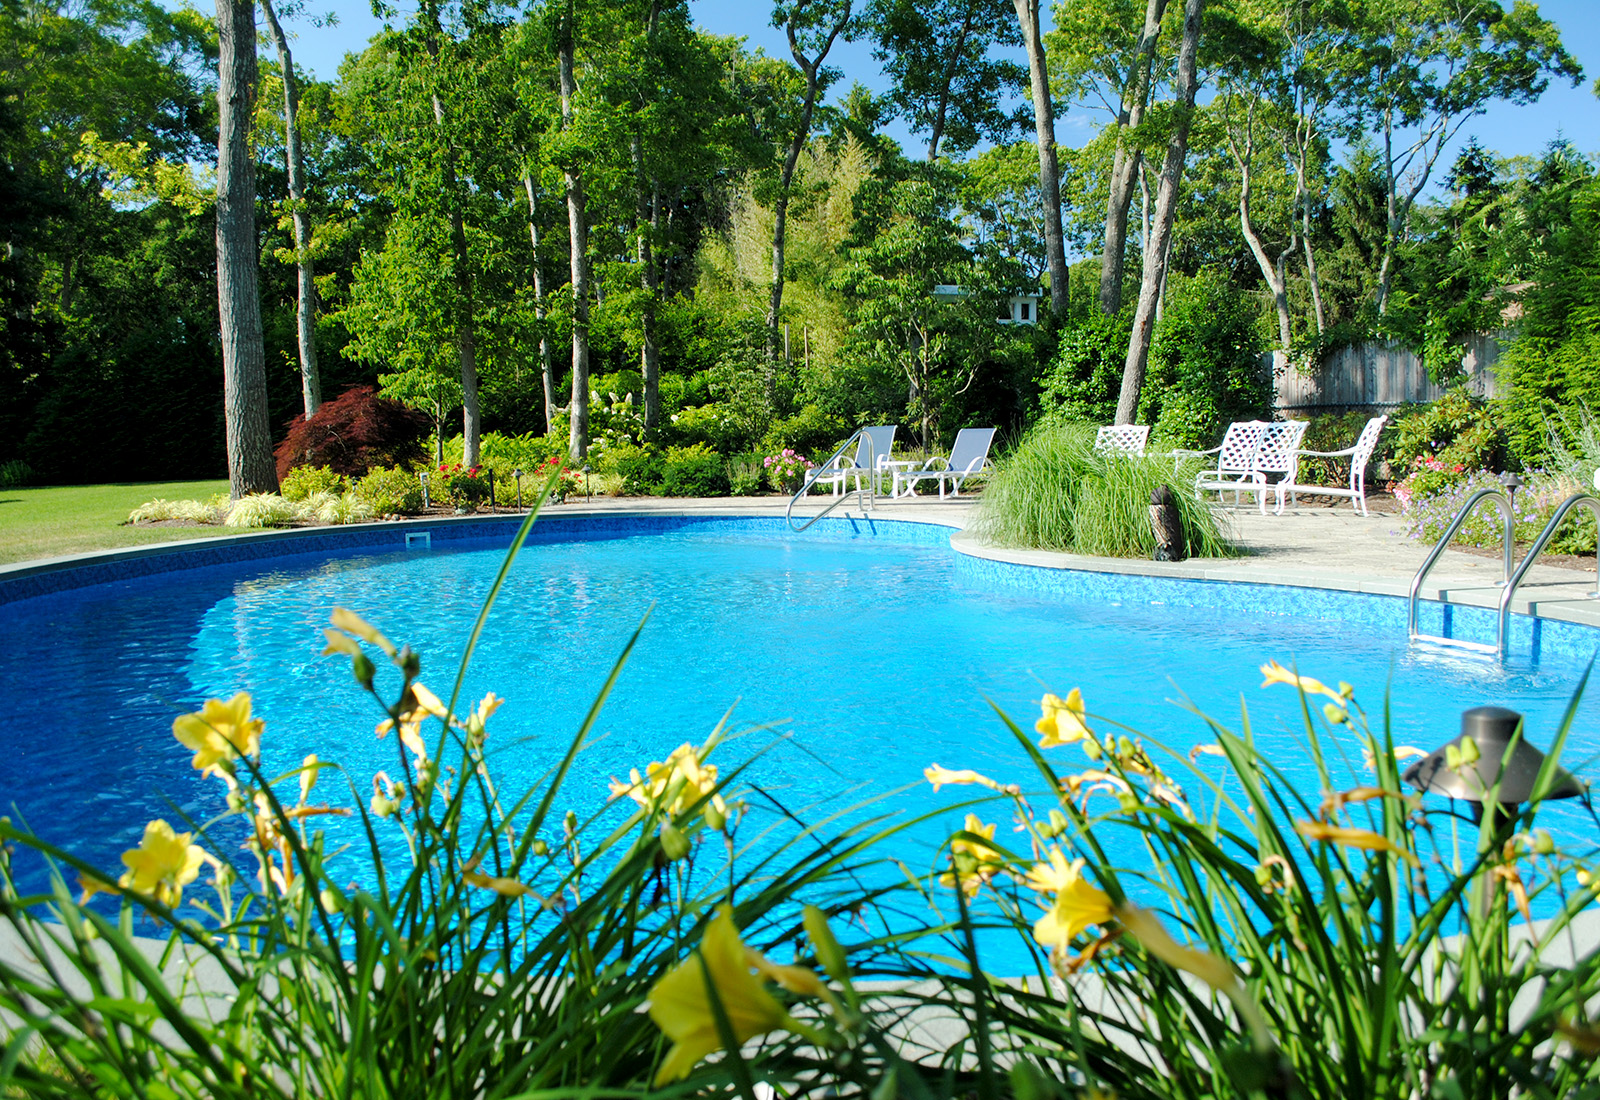 Enjoy the outdoors with a pool surrounded by flowering perennials.